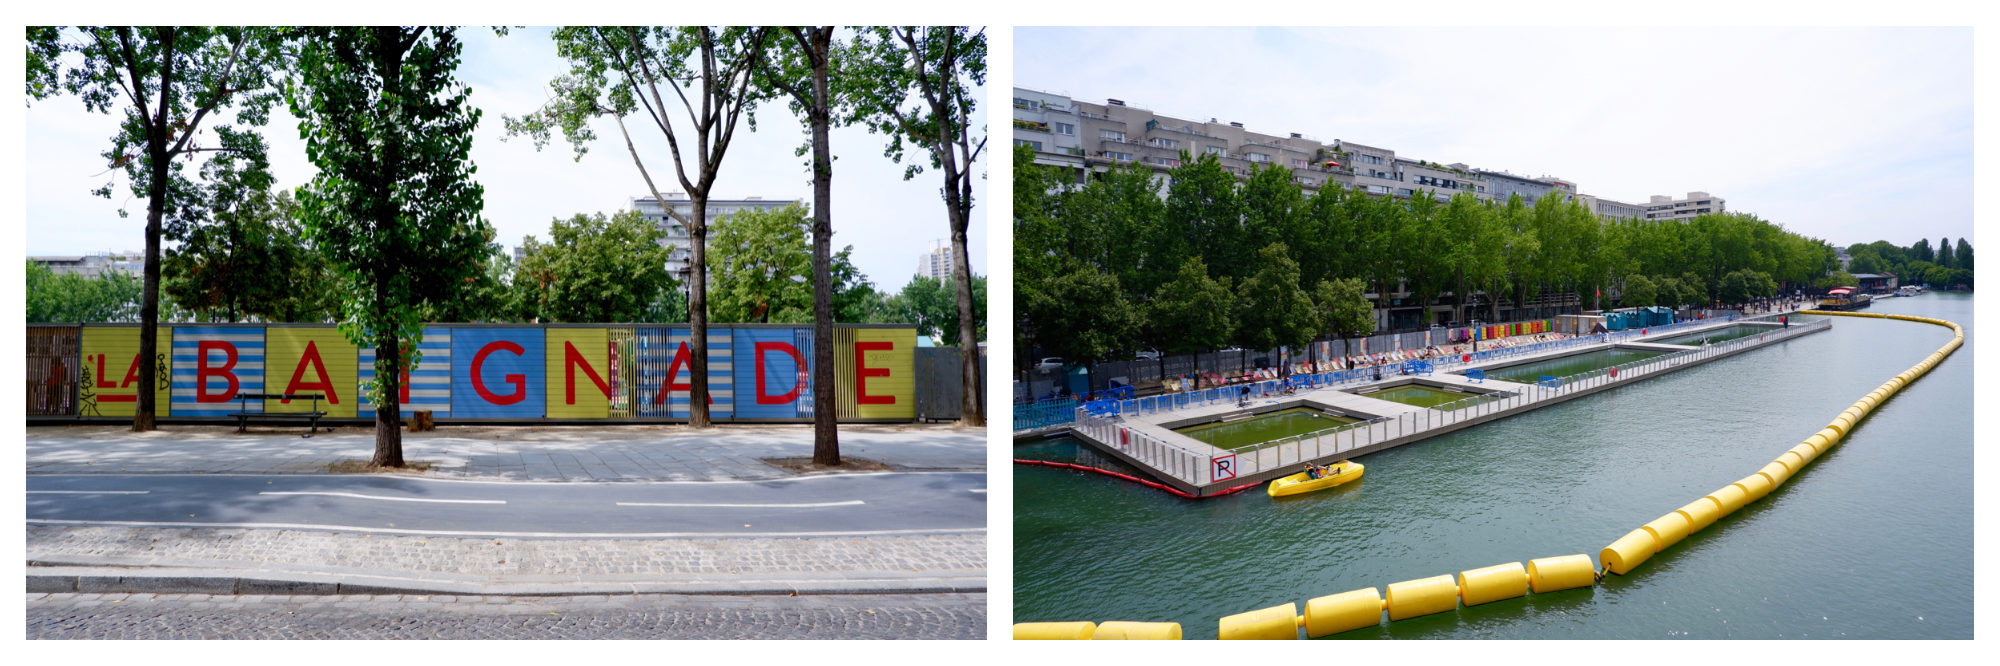 The words 'La Baignade' (bathing area) painted on the fence of Paris Plages on the Canal de l'Ourcq (left) and the canal pools where people can swim in summer (right).